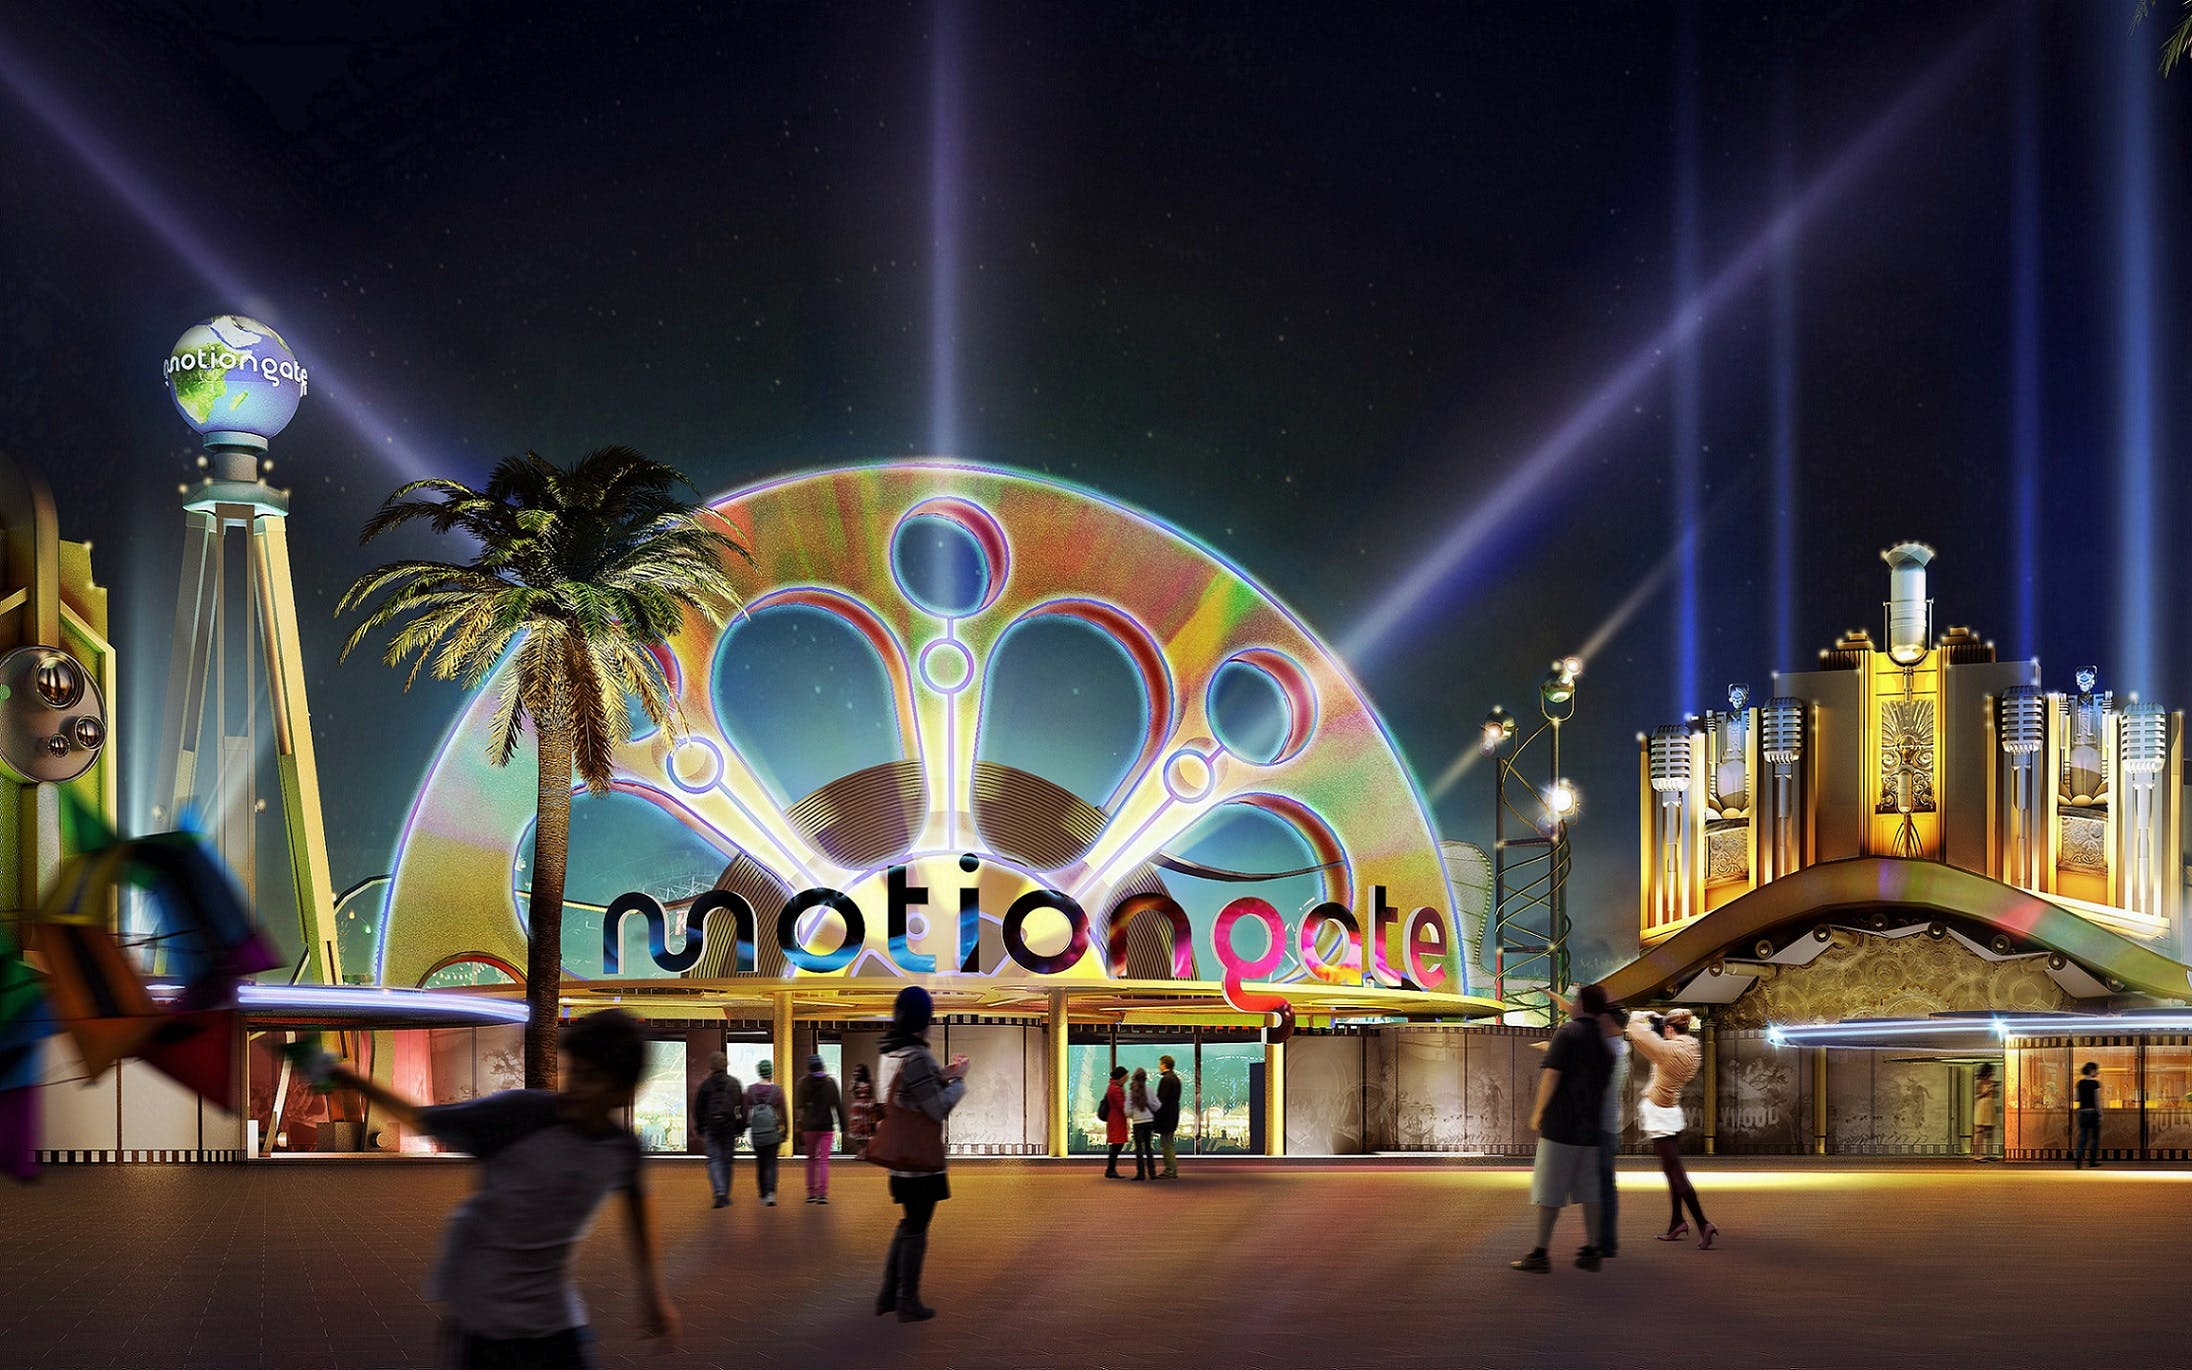 Motiongate Dubai: Entry Ticket with Unlimited Food & Beverages